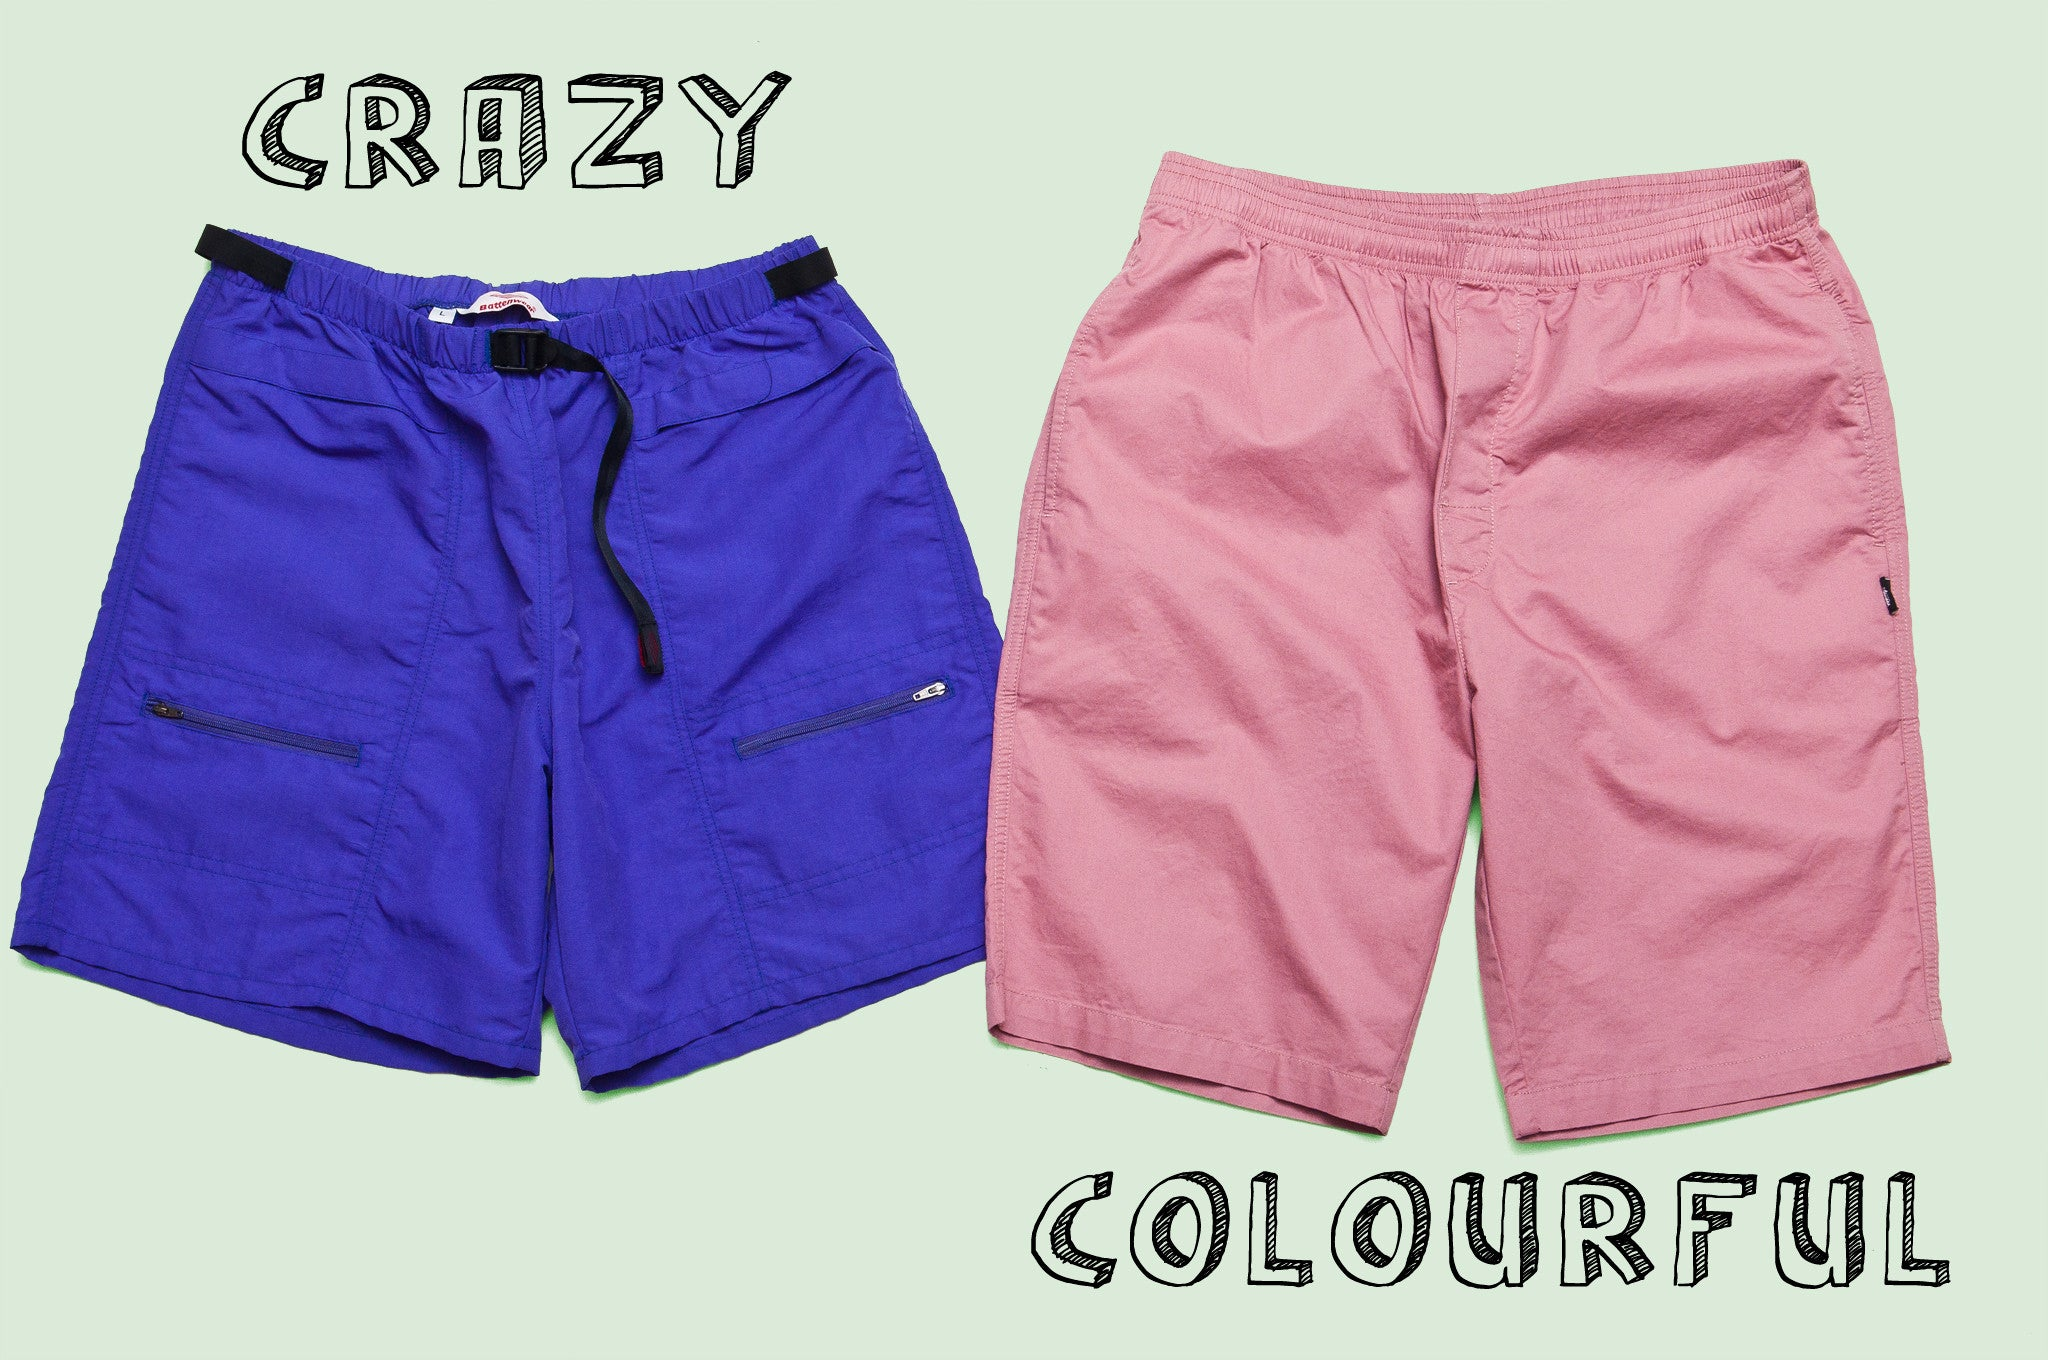 Battenwear Camp Shorts and Stüssy Light Twill Beach Shorts